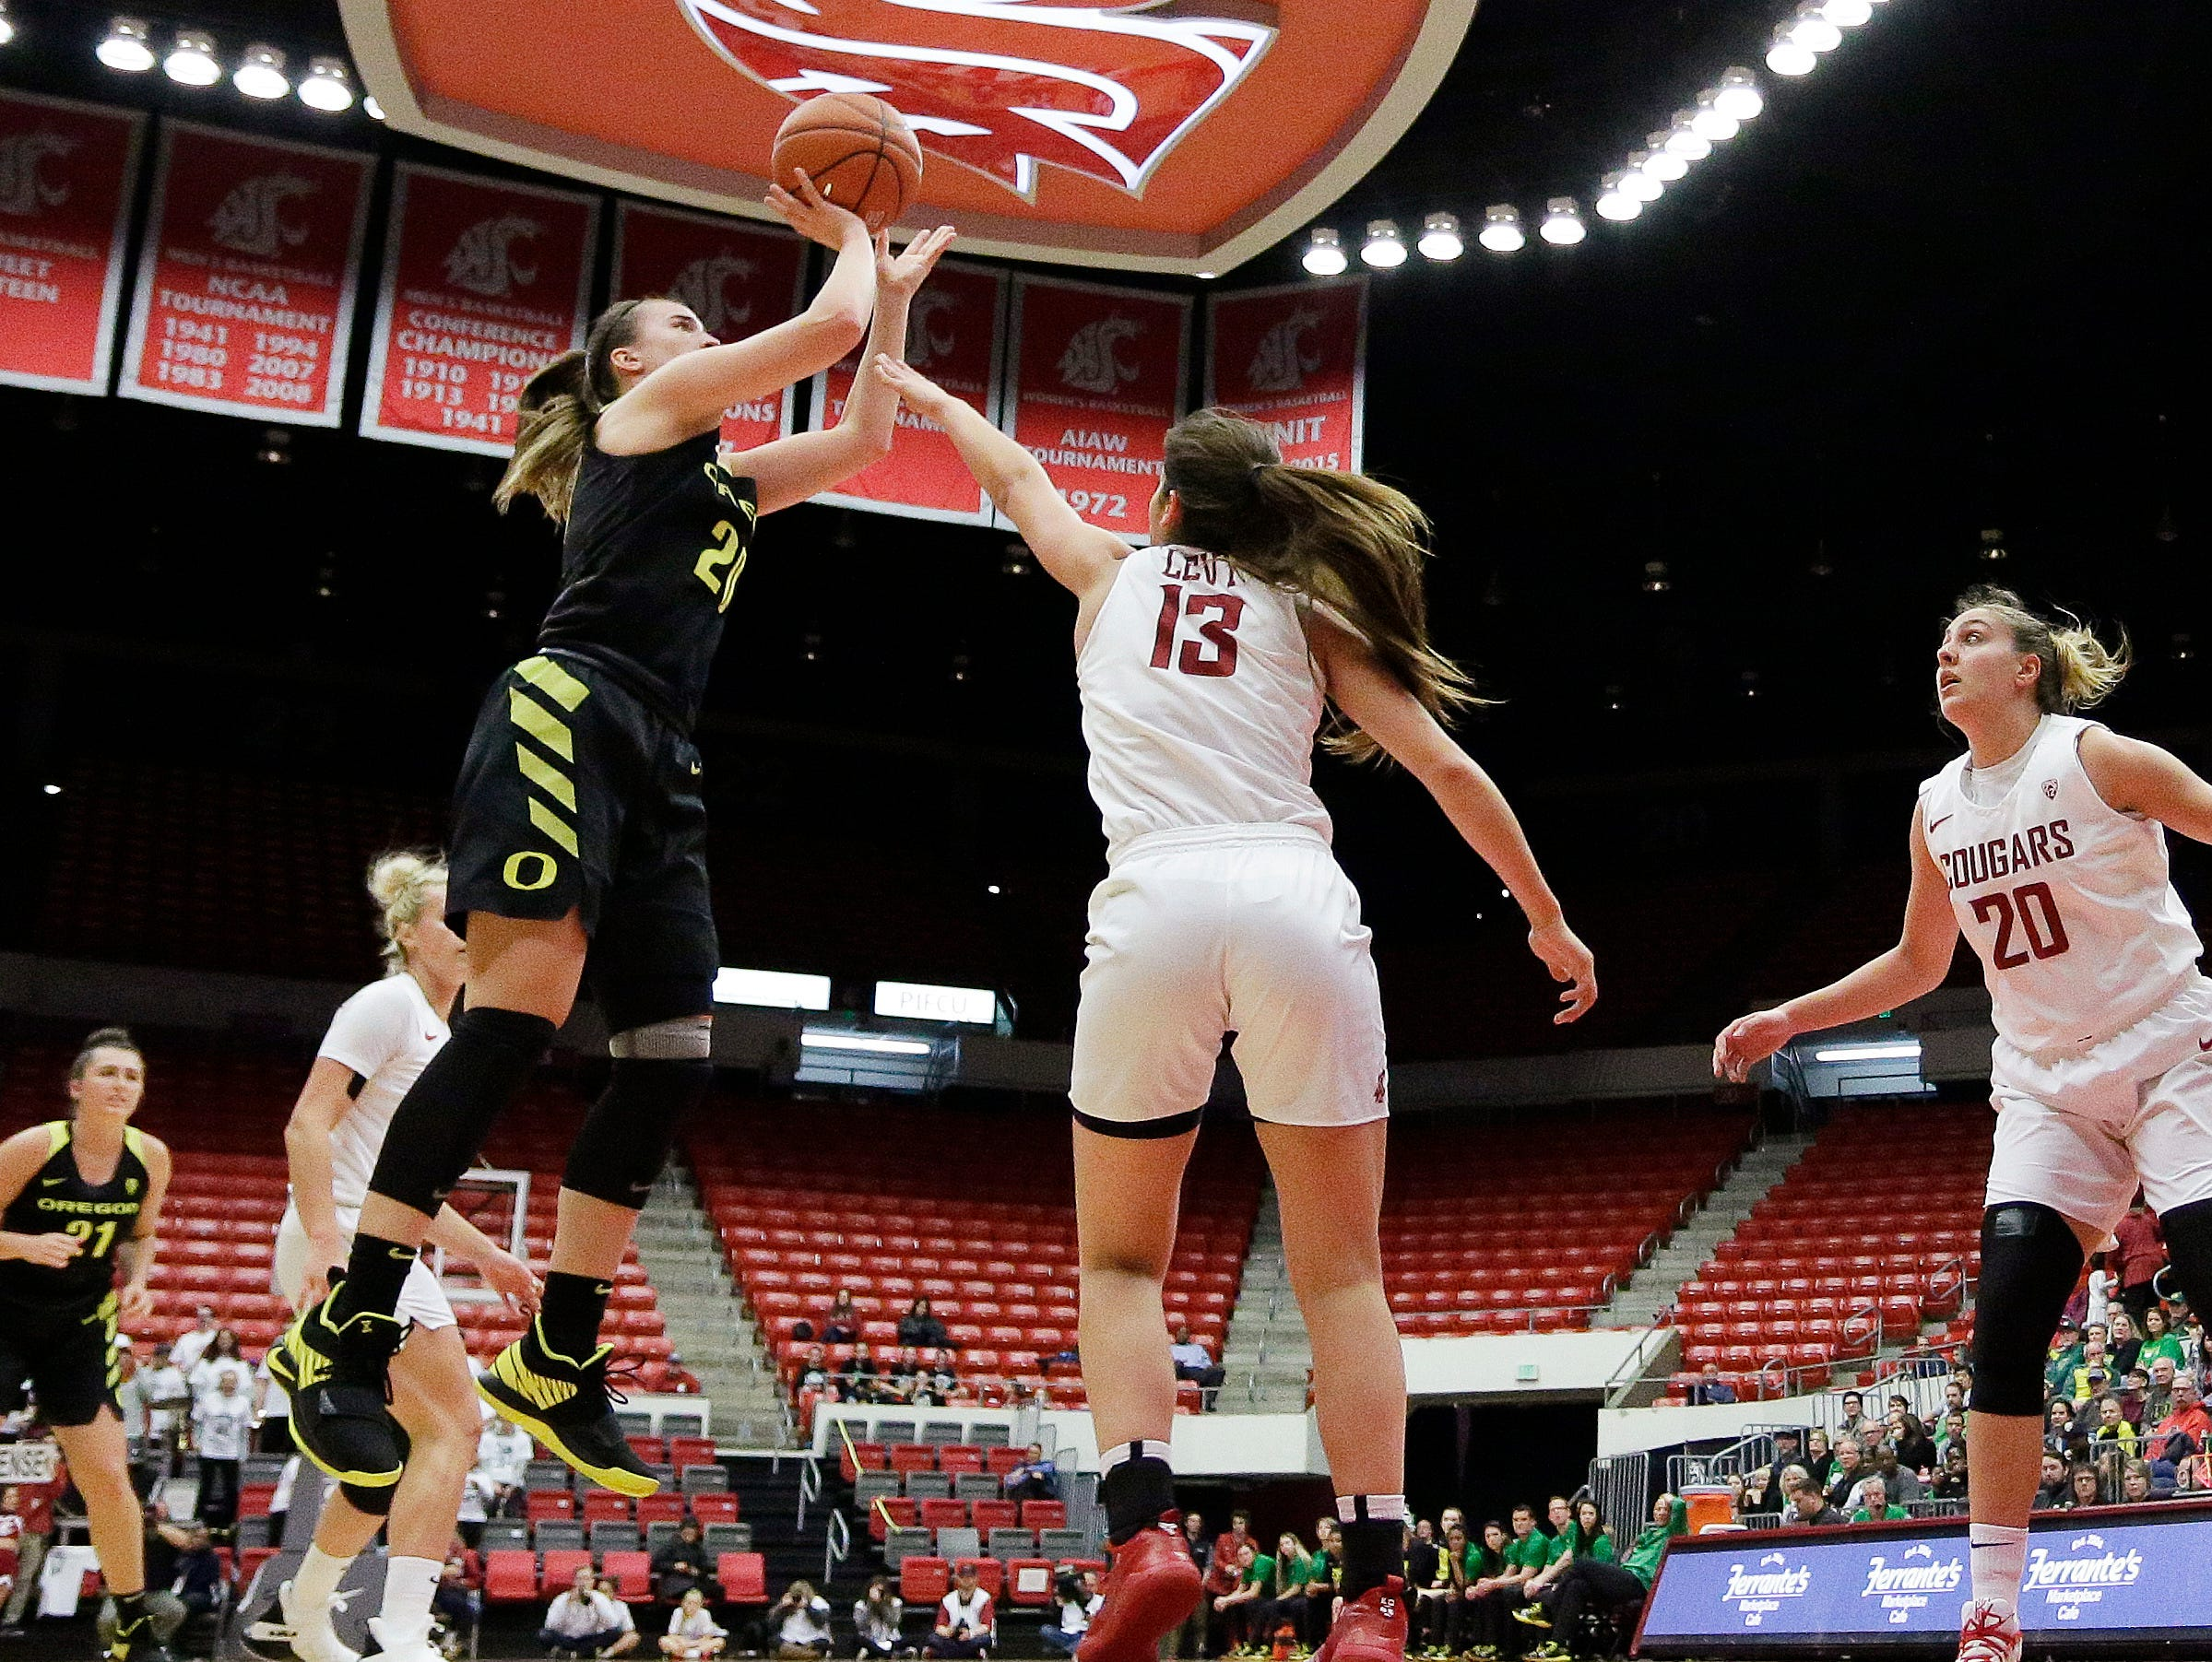 Oregon guard Sabrina Ionescu, front left, shoots over Washington State forward Shir Levy (13) during the first half of an NCAA college basketball game in Pullman, Wash., Friday, Jan. 25, 2019.